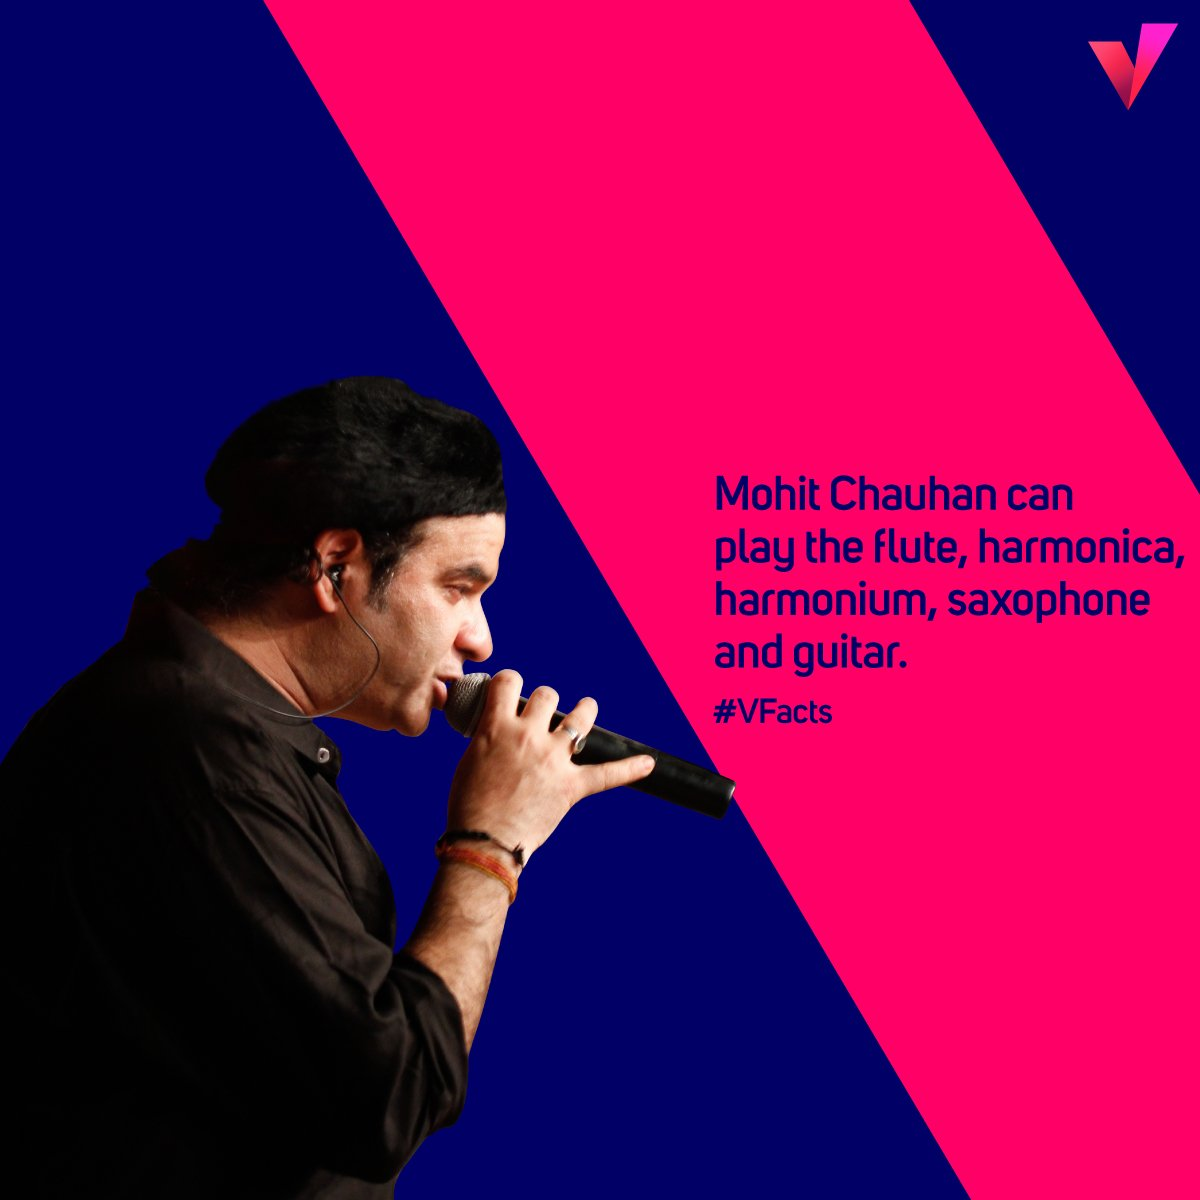 Now that's some talent! #VFacts #MohitChauhan https://t.co/vRAm8C60E0